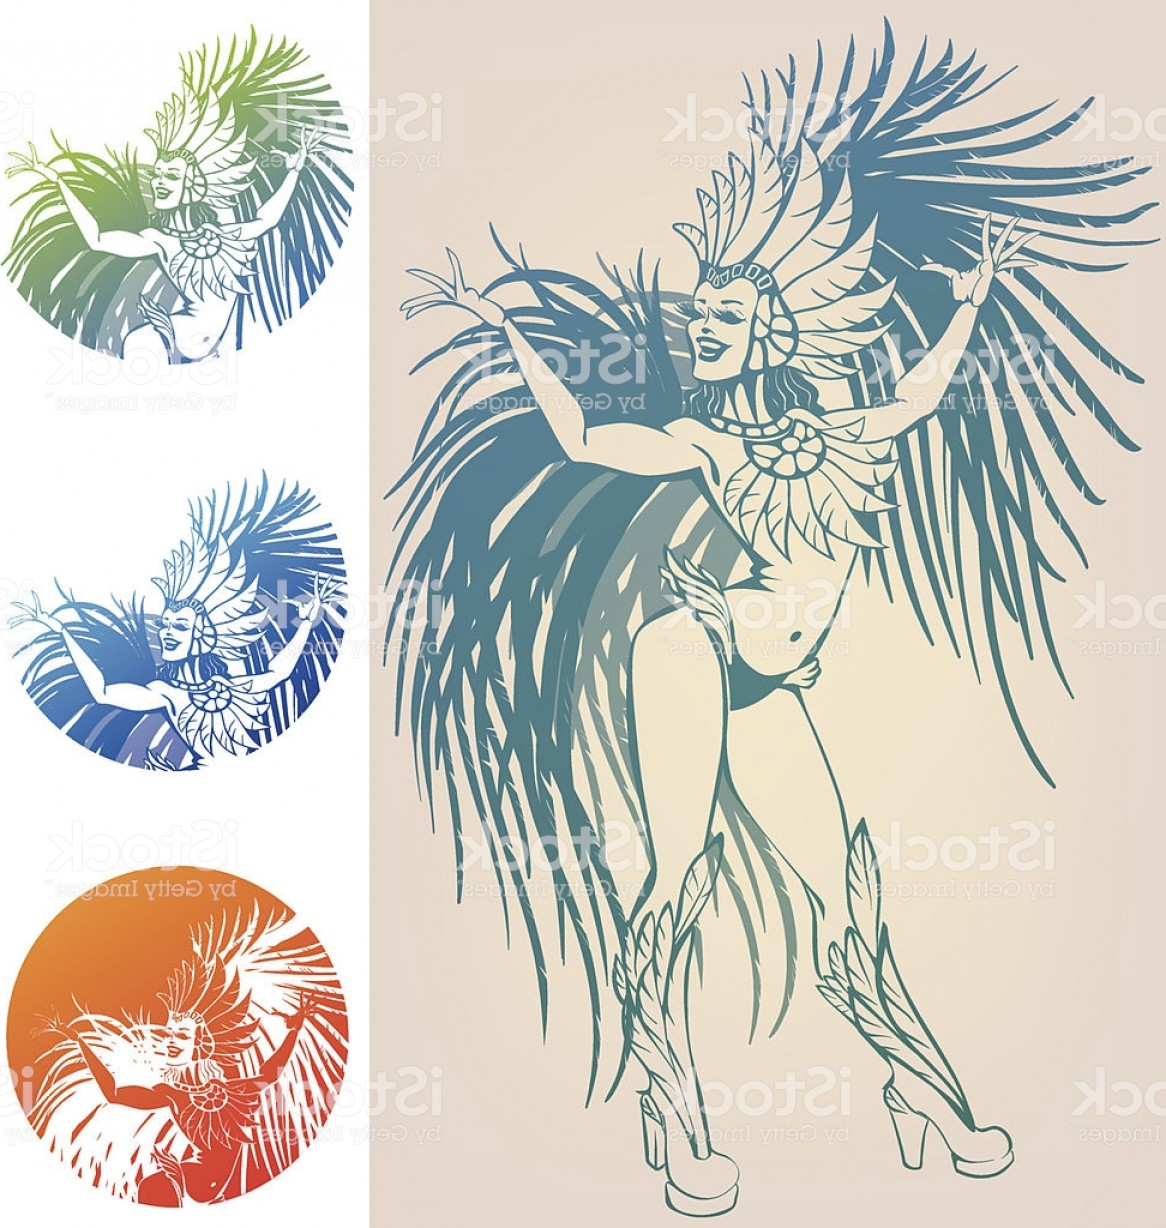 Carnival Vector Feather Art: Ink Line Work Dancing Girl In Carnival Feather Costume Gm